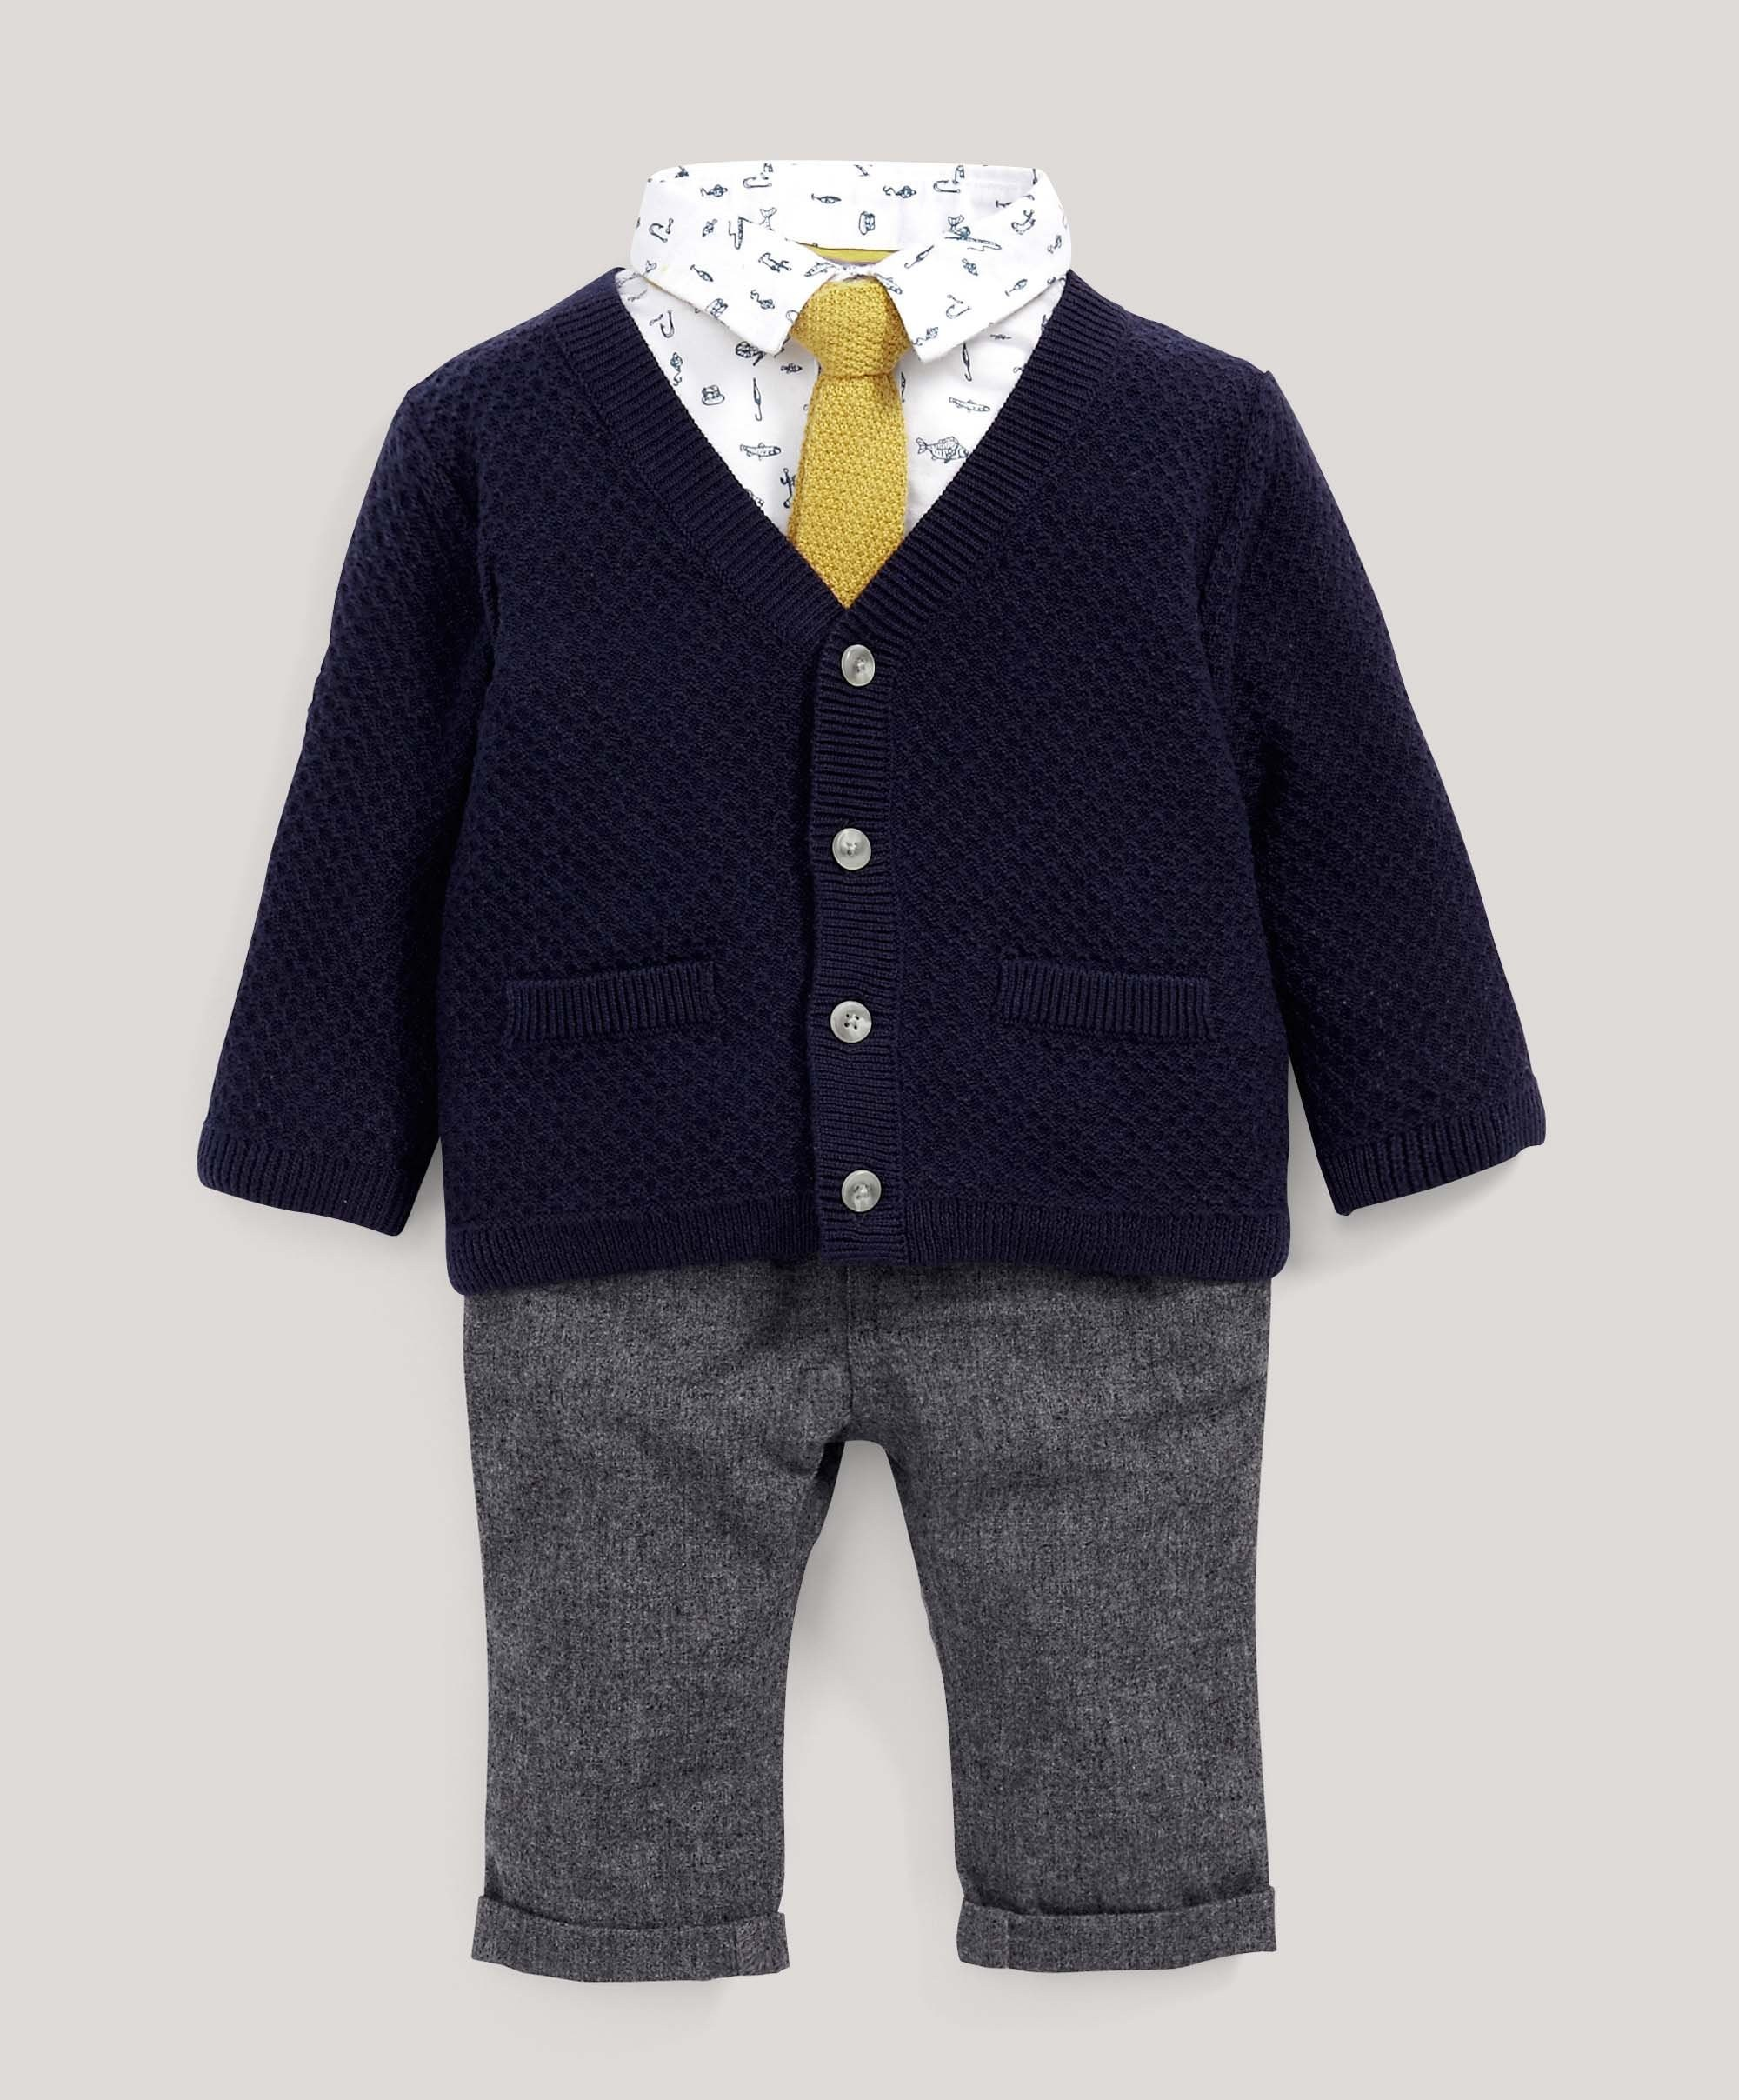 Cardigan, Shirt, Trousers & Tie Set